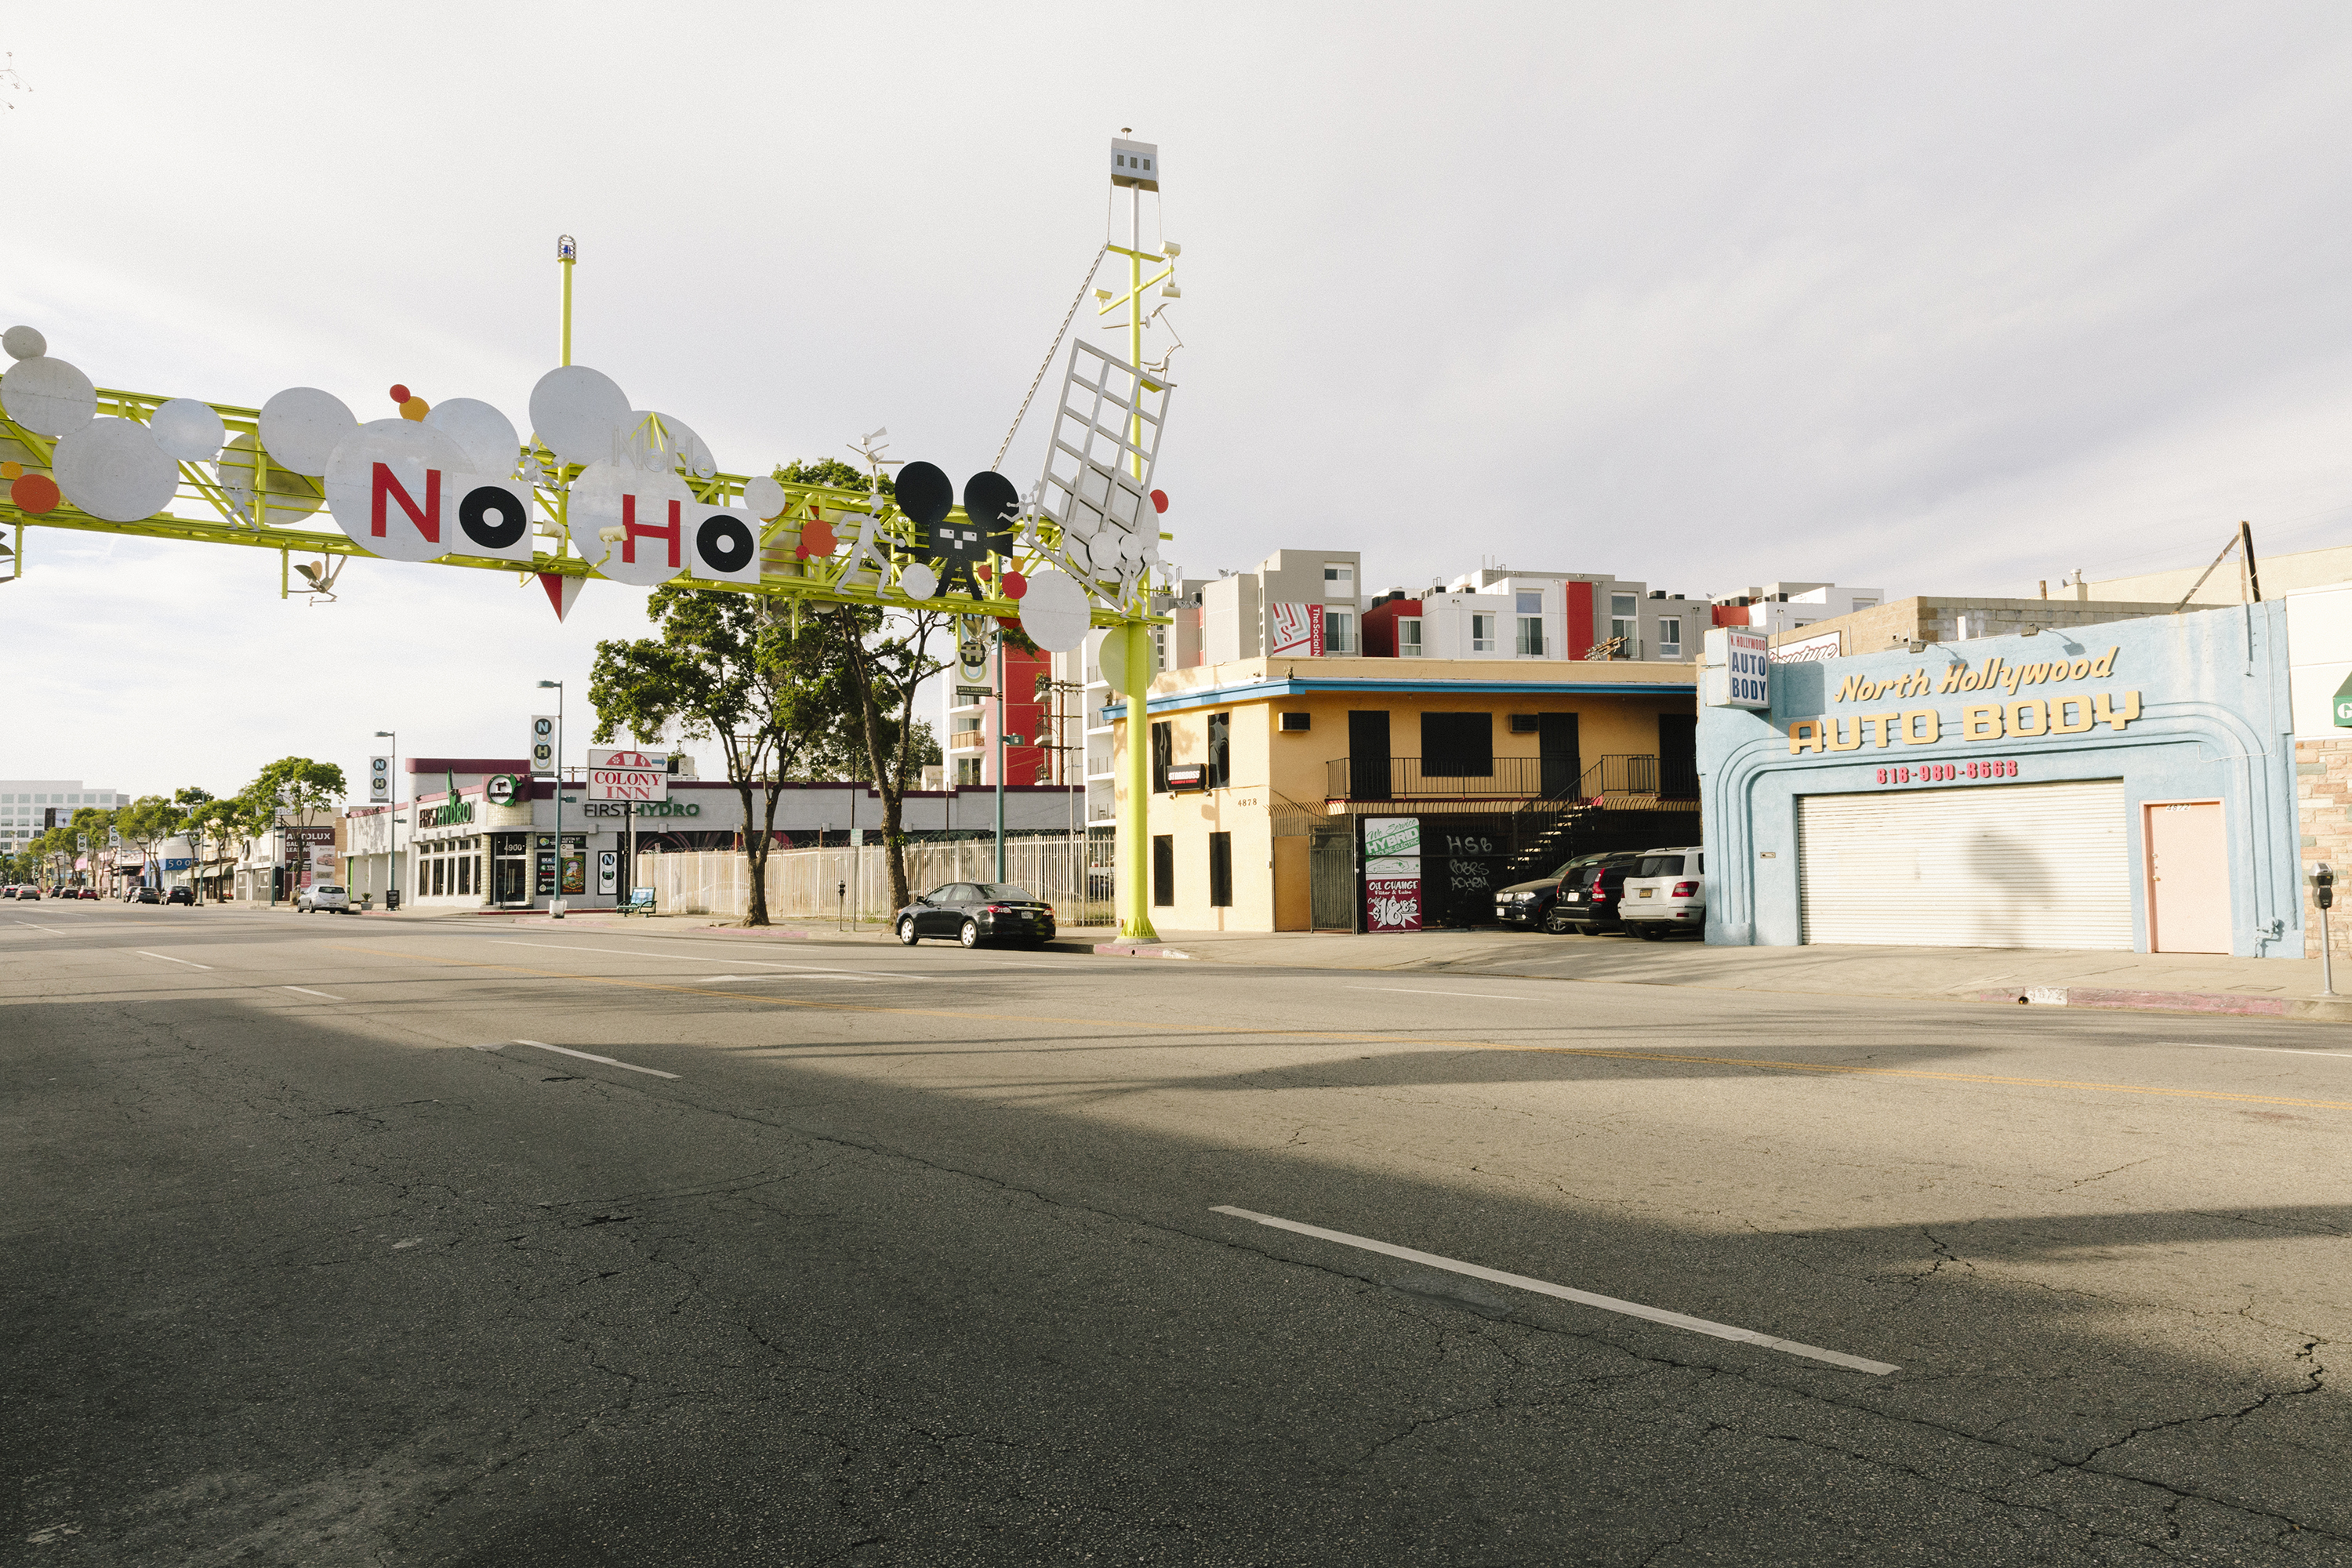 A sign that hangs above the street reads NO HO in red and black letters, on a metal sign that is yellow, white, black and red. On the street is the North Hollywood Auto Body shop, along with various other small buildings and shops.